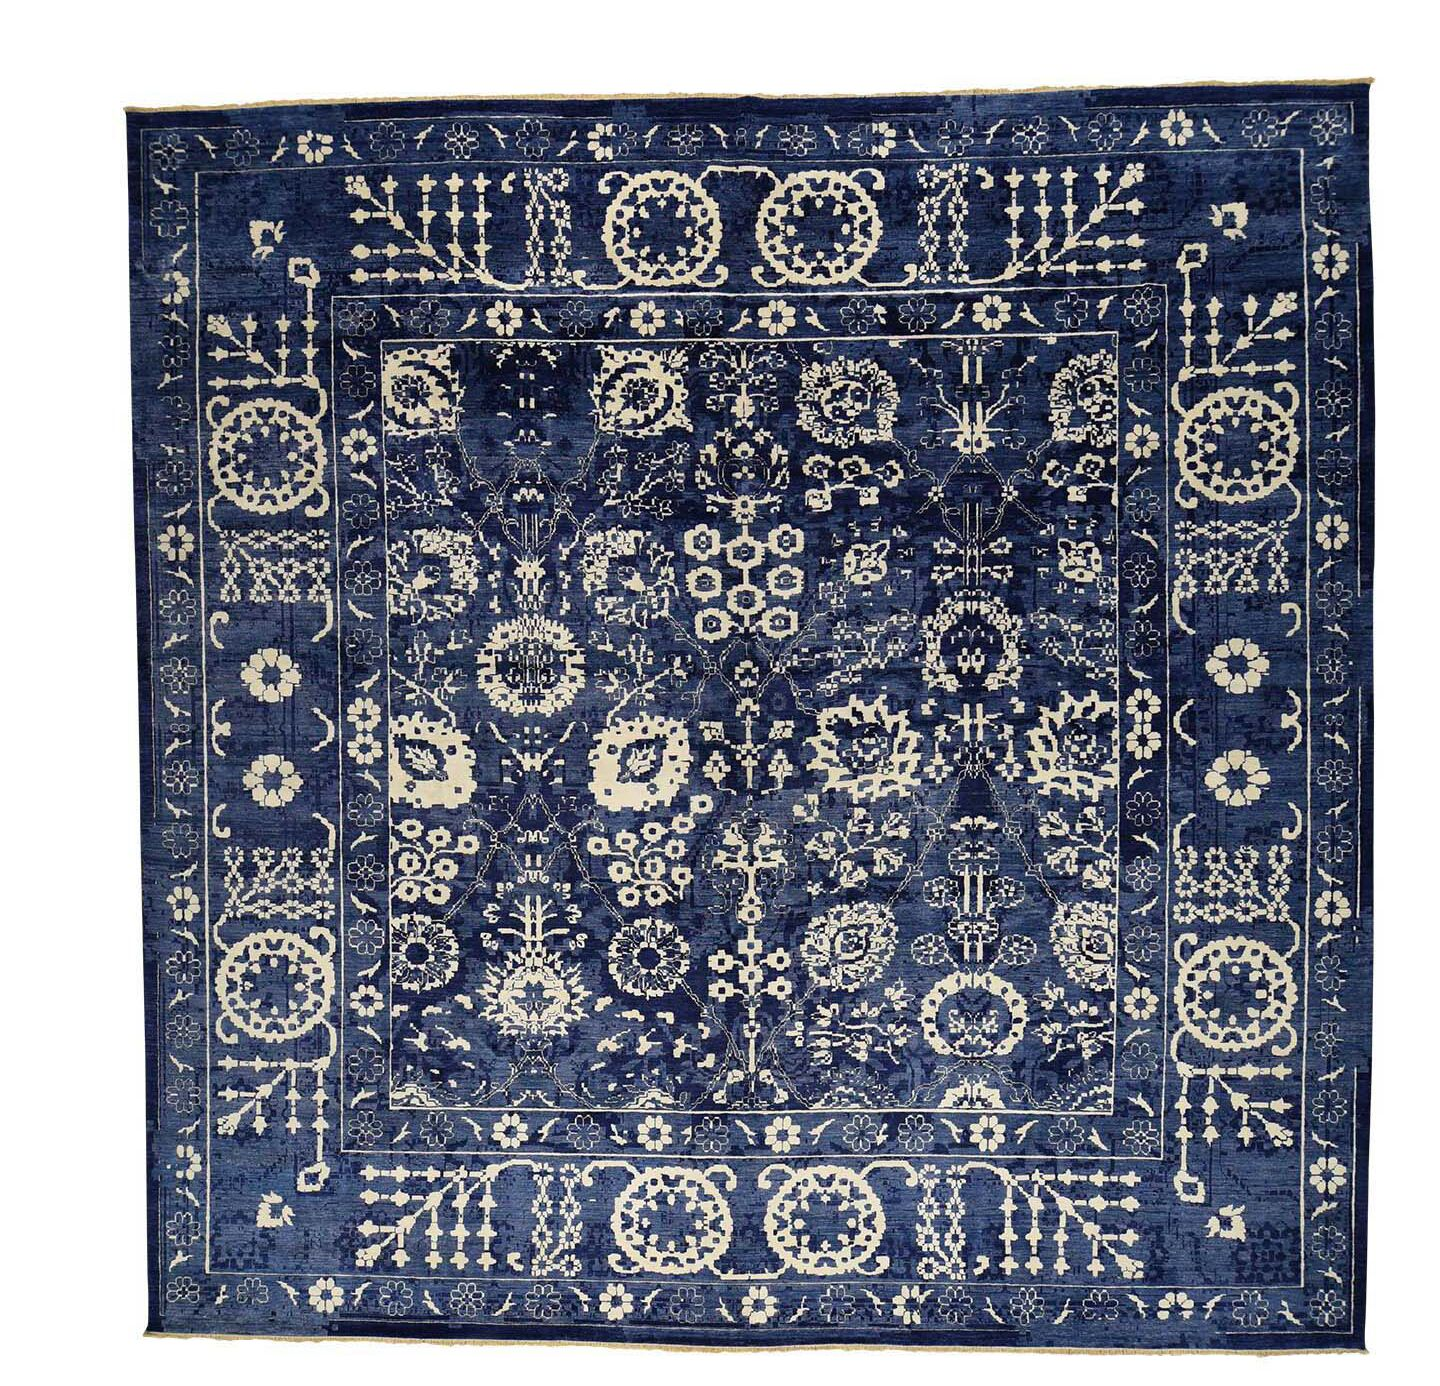 One-of-a-Kind Rudolph Tone on Tone Hand-Knotted Blue Area Rug